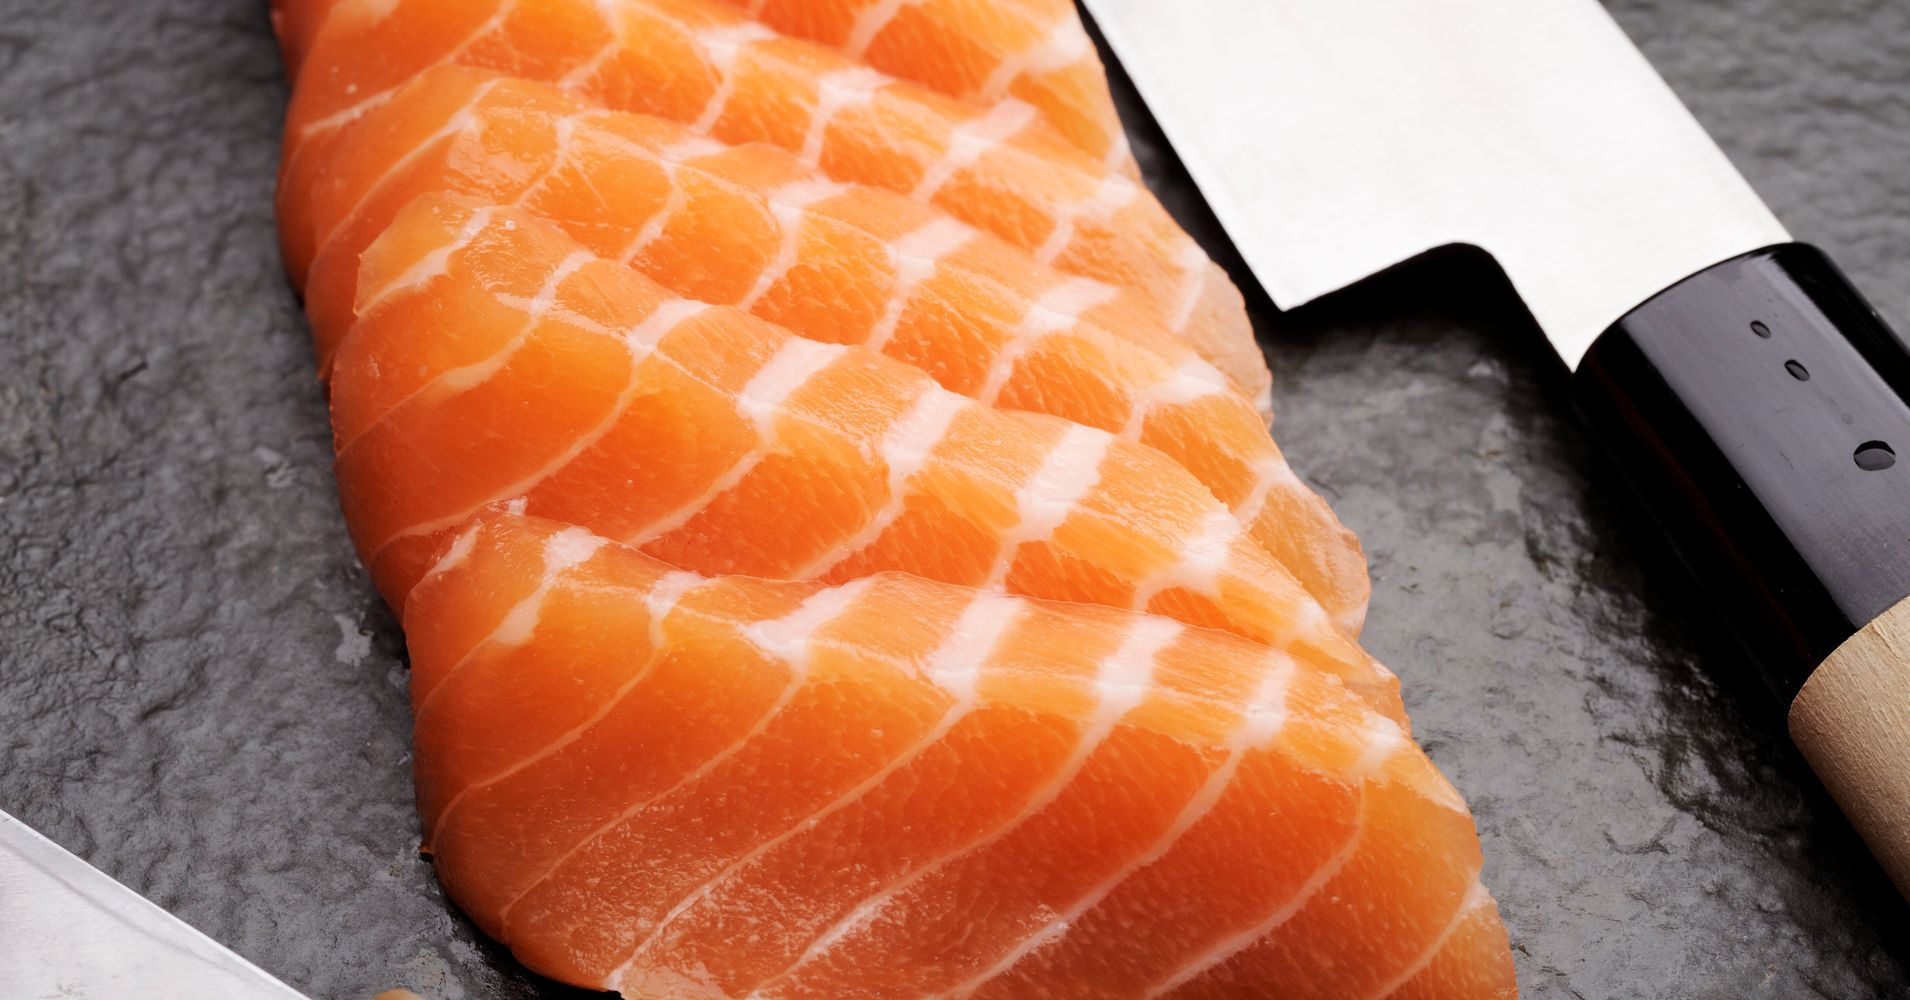 Sushi fanatic rethinks raw fish after pulling 5 foot for Diarrhea after eating fish